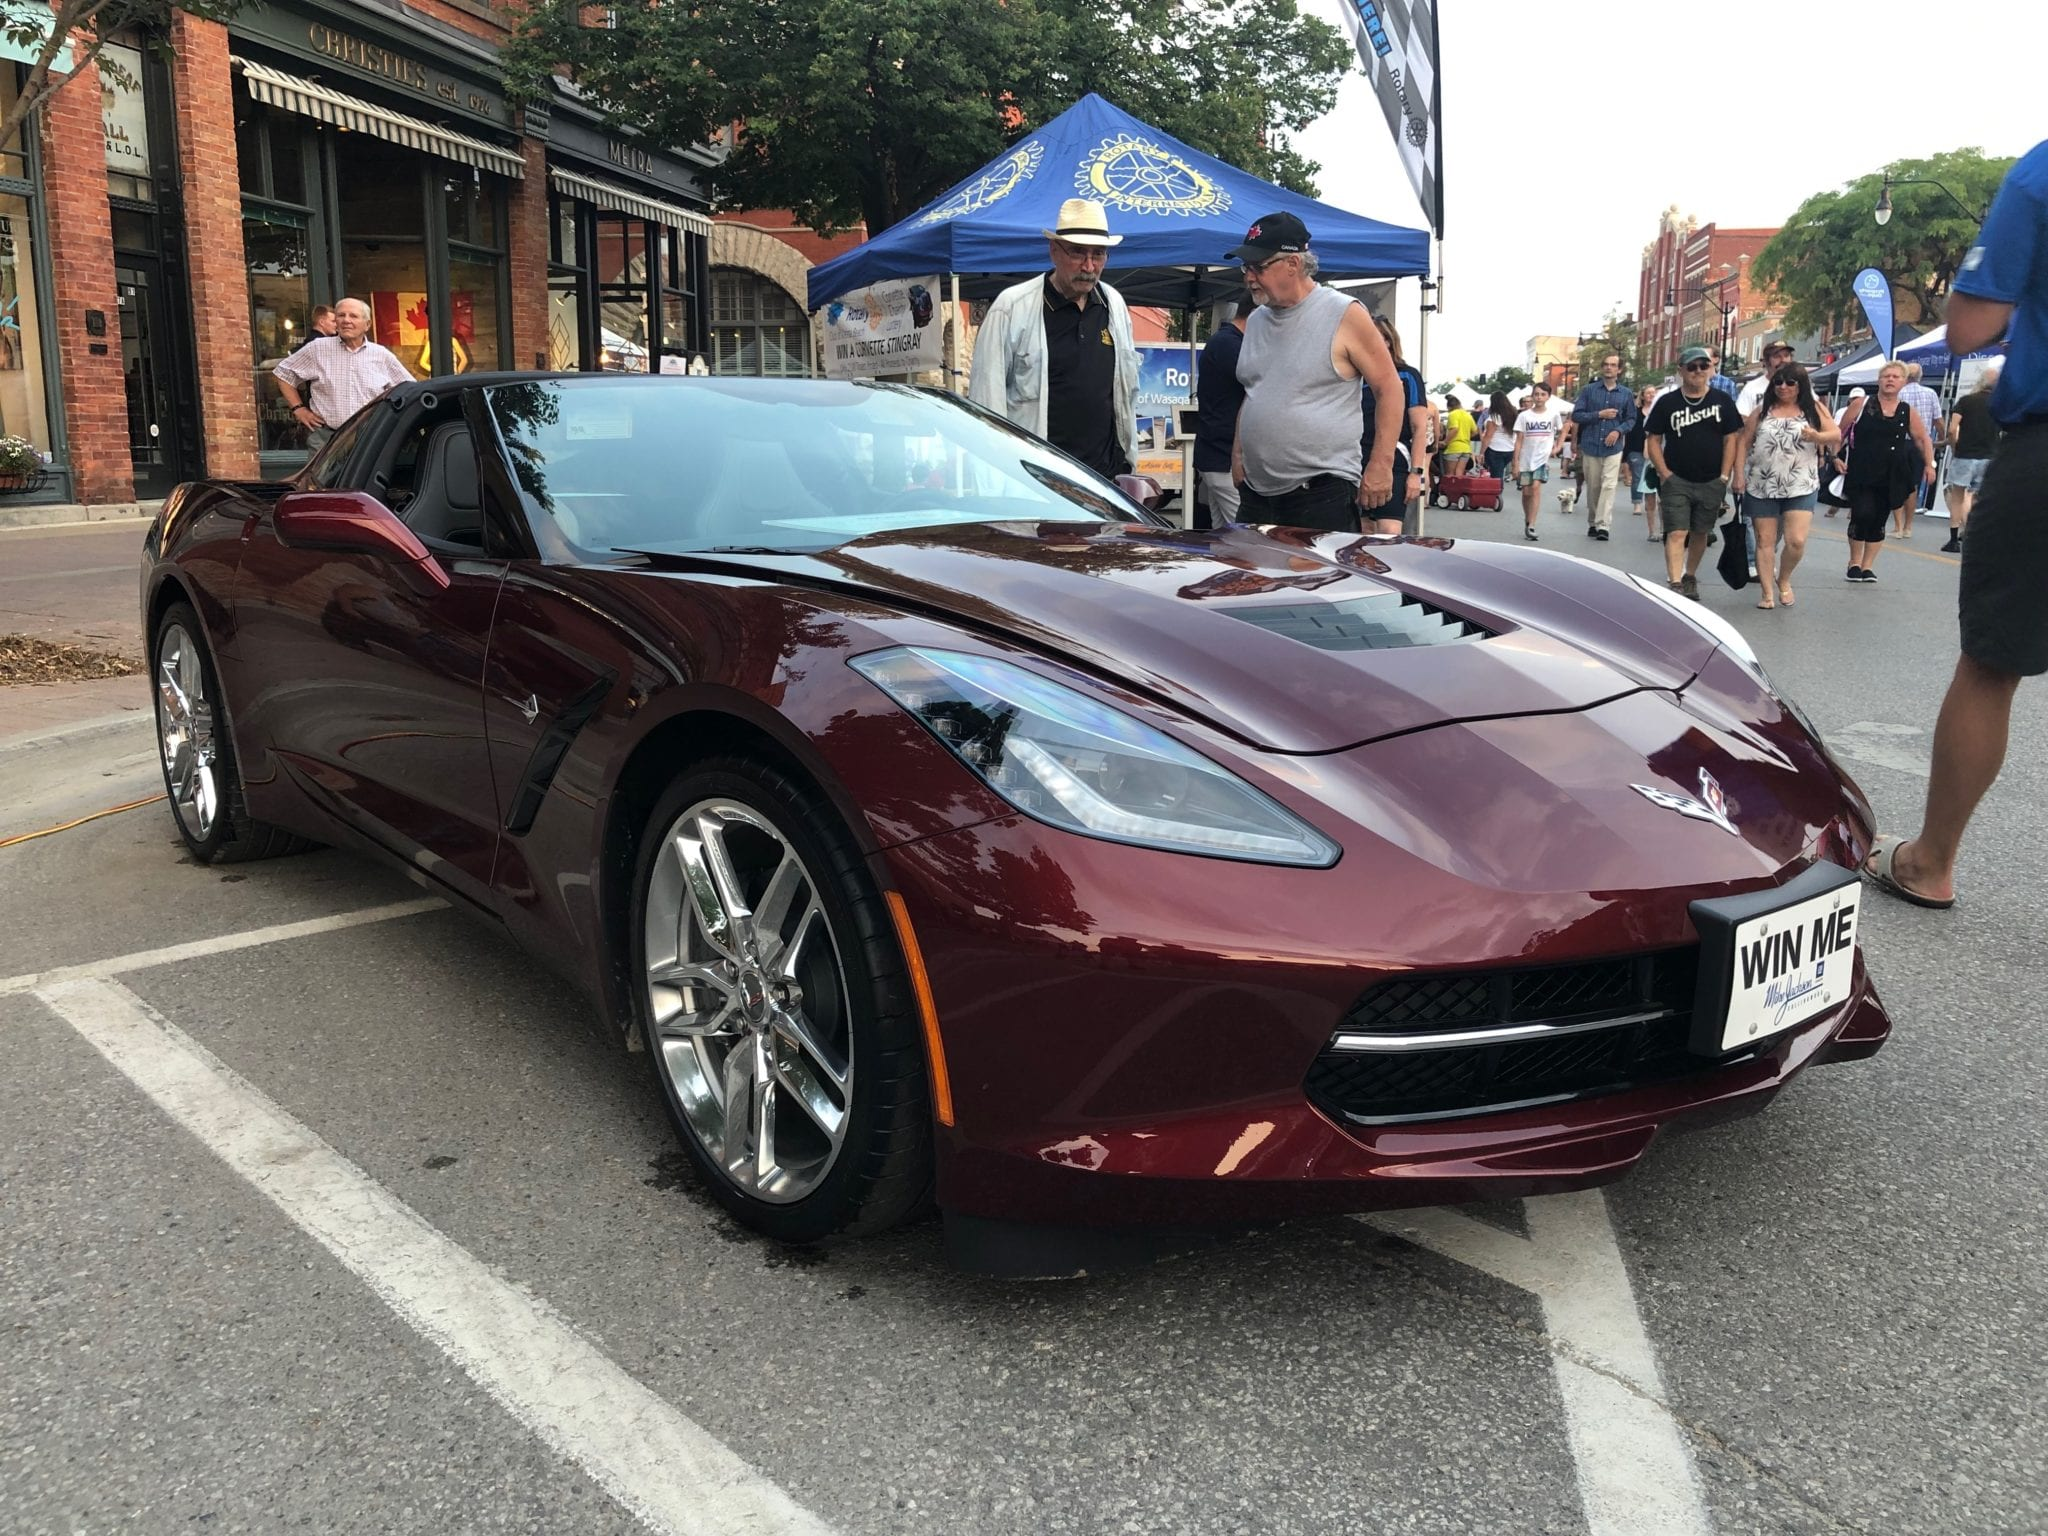 Corvette Lottery: The main prize winner takes the car